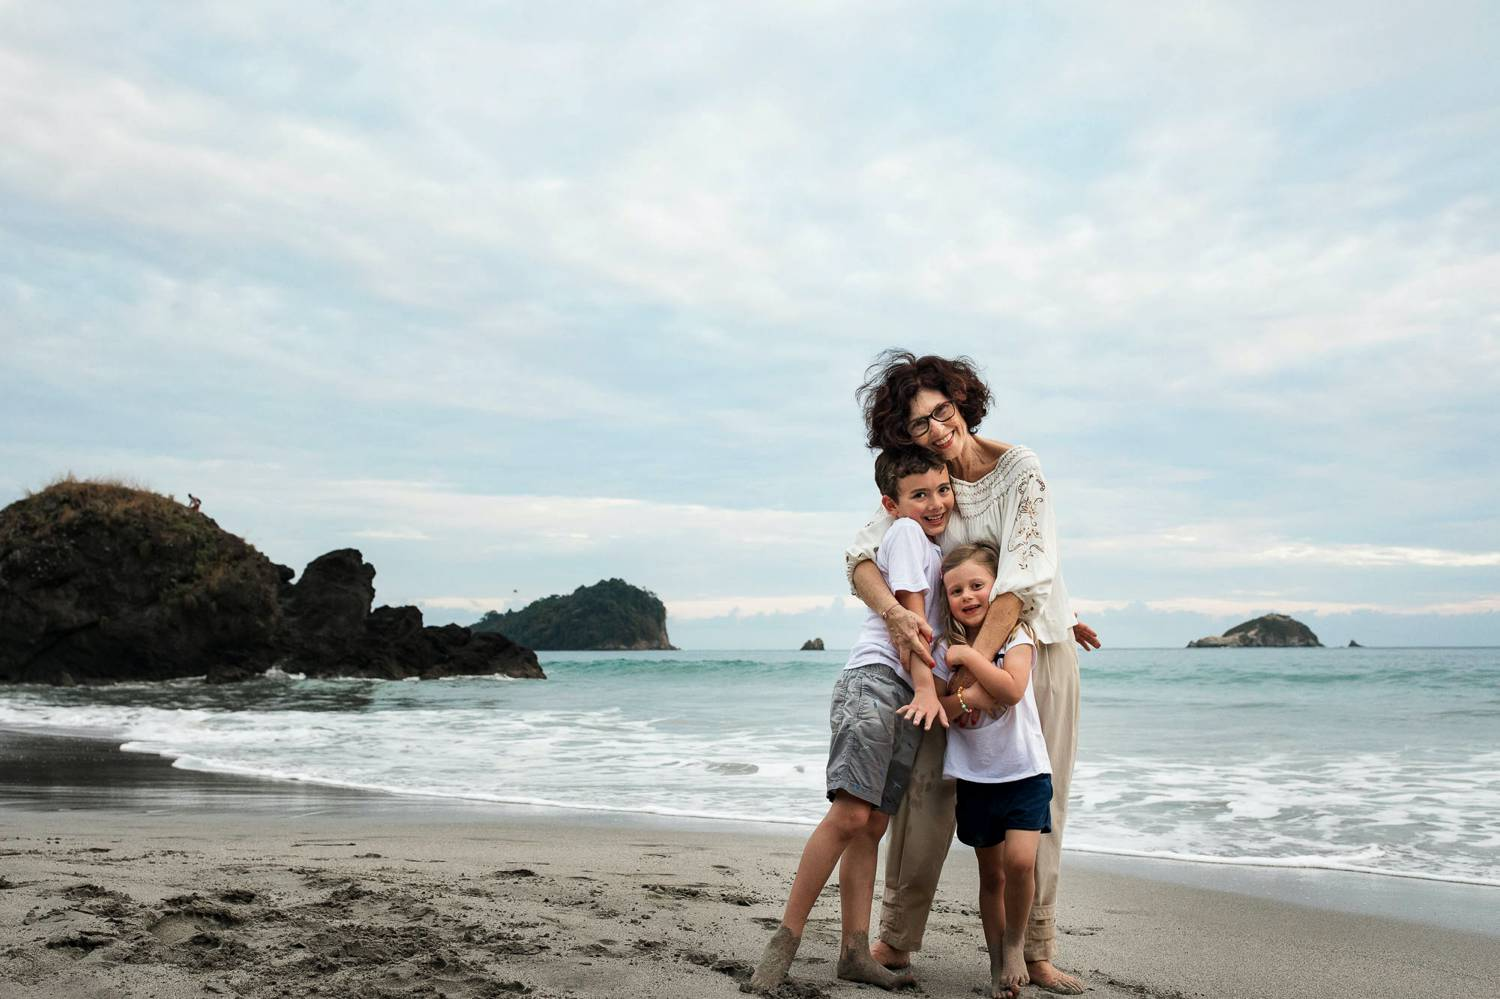 A photo of Kevin Heslin depicts a curly-haired mom on a beach holding her sons.